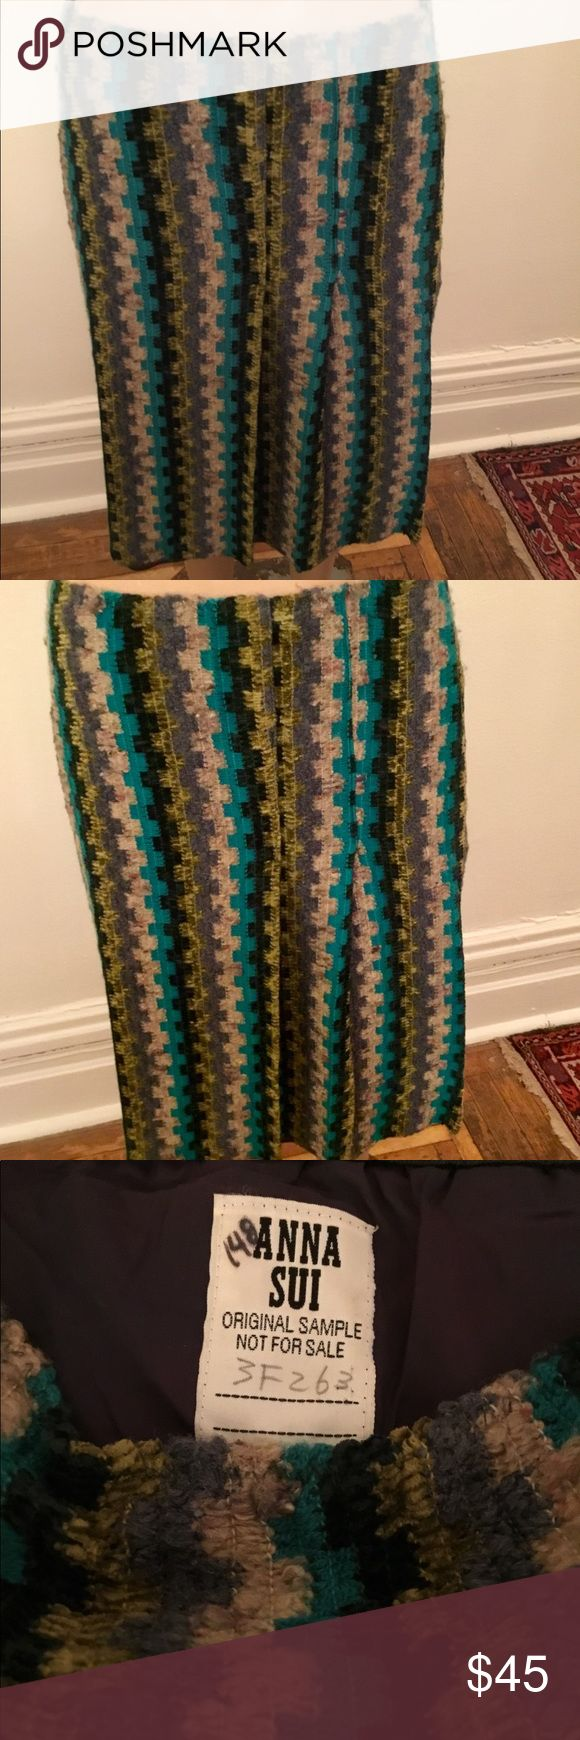 Anna Sui Nubby striped skirt This is a nubby zigzag striped skirt of turquoise, purple and blue by Anna Sui. As you can see from the label it is an original sample. Measurements are: Waist 32 Hip 36 Length 24 Anne Sui Skirts Midi